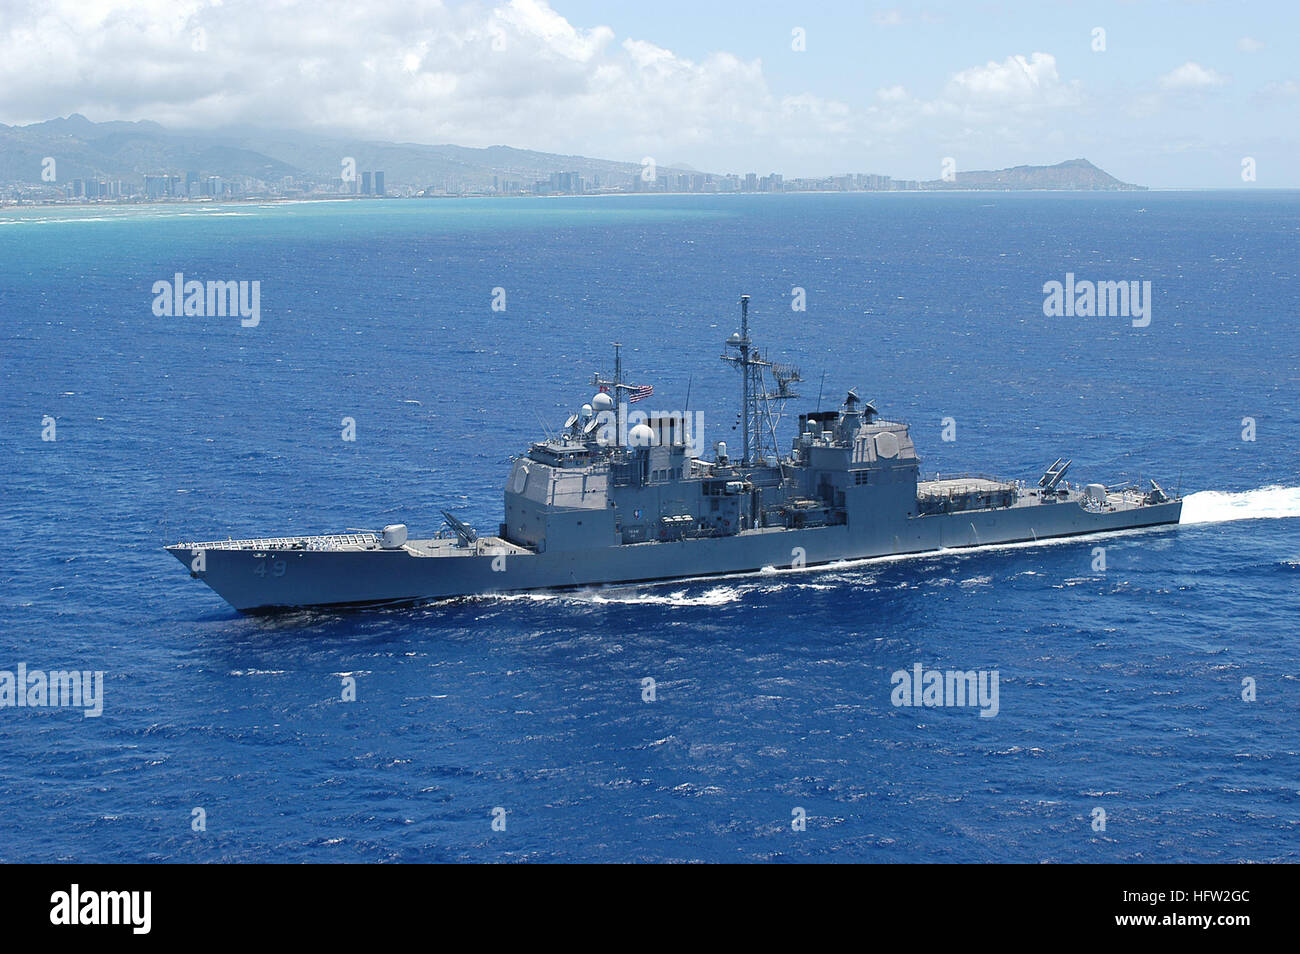 050415-N-8157F-047  Pearl Harbor, Hawaii (April 15, 2005)- The guided-missile cruiser USS Vincennes (CG 49) heads - Stock Image